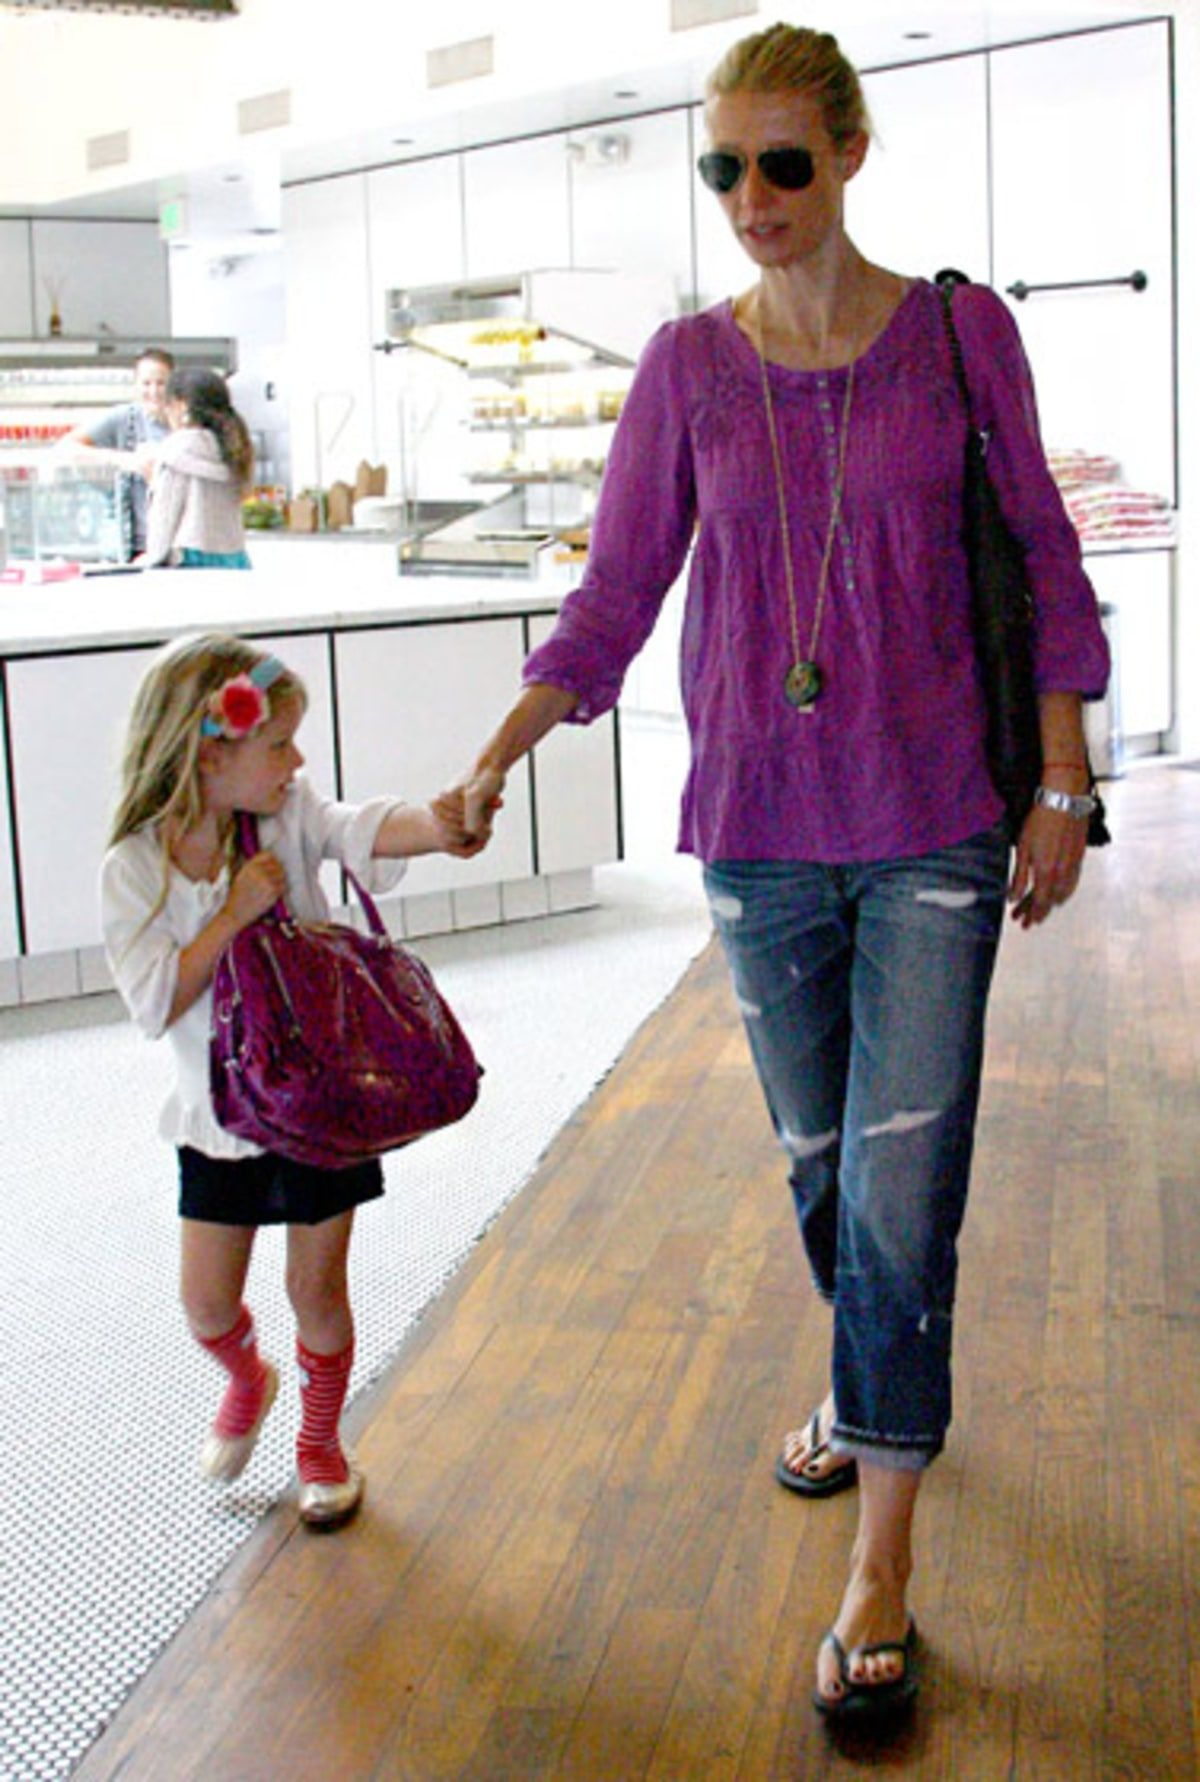 Apple Martin's Cutest Moments With Mom Casual day